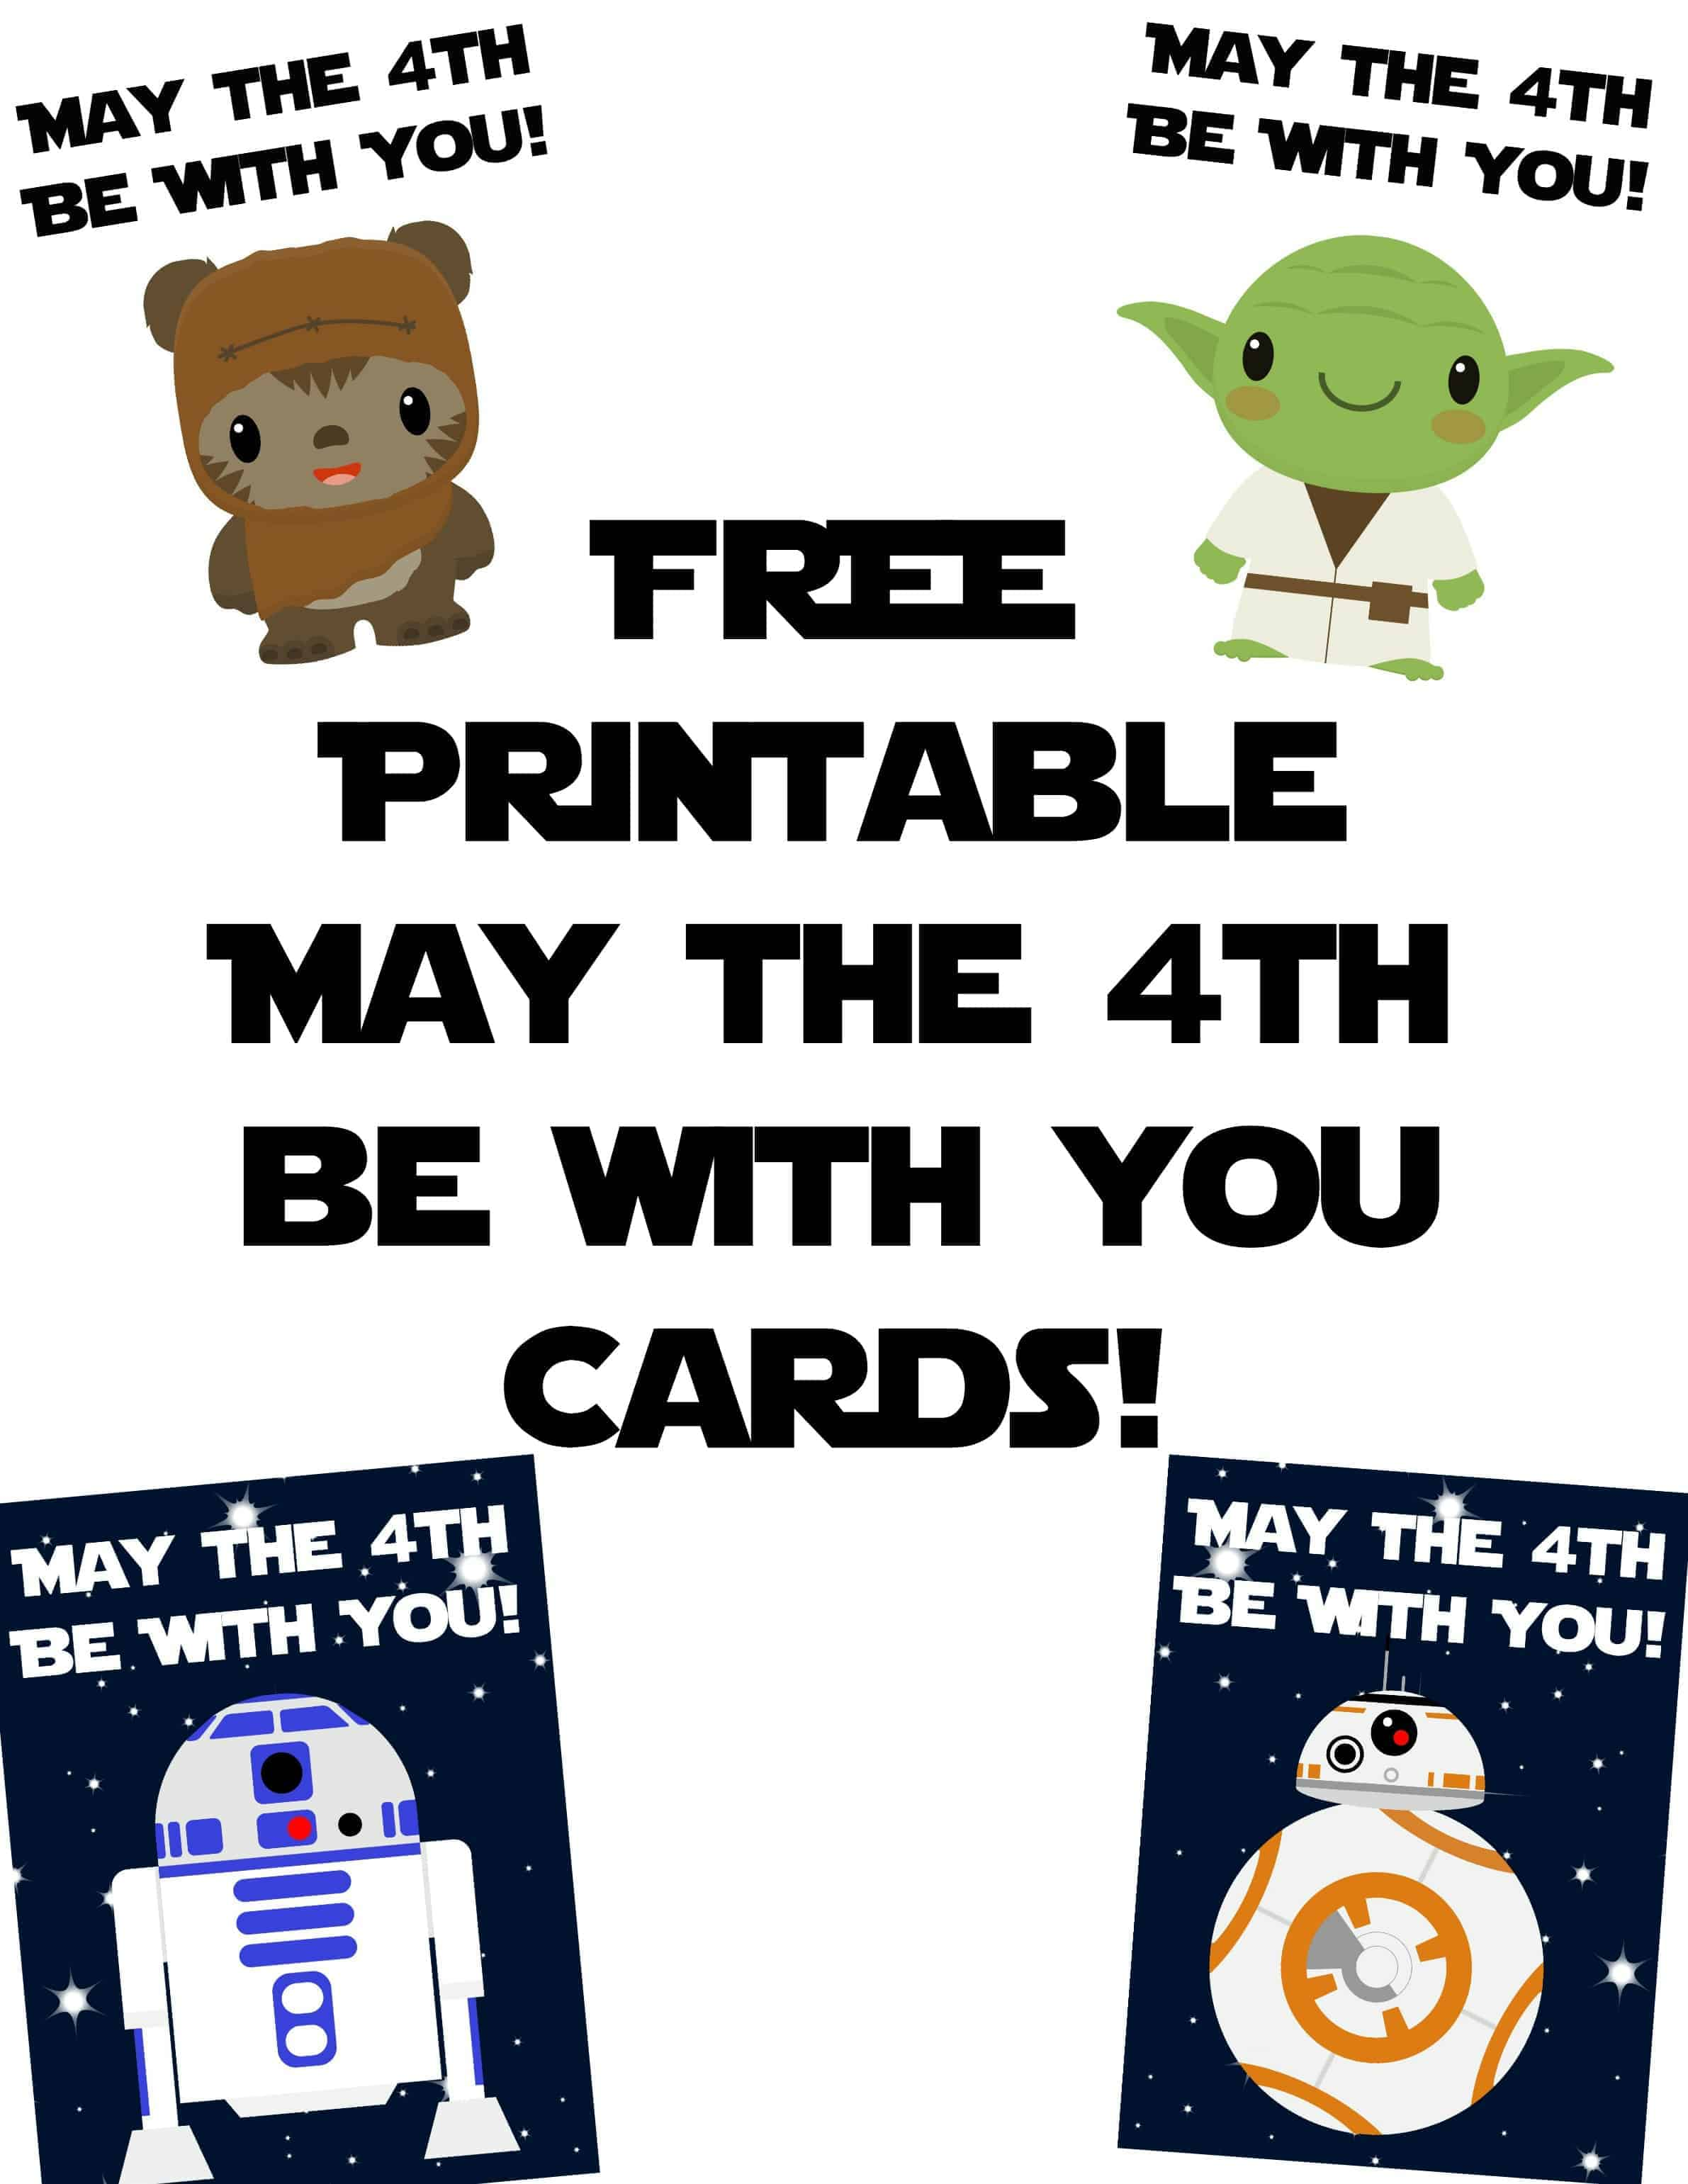 picture regarding Star Wars Clip Art Free Printable named Star Wars Playing cards for Could possibly The 4th Be With Yourself - Rock Your